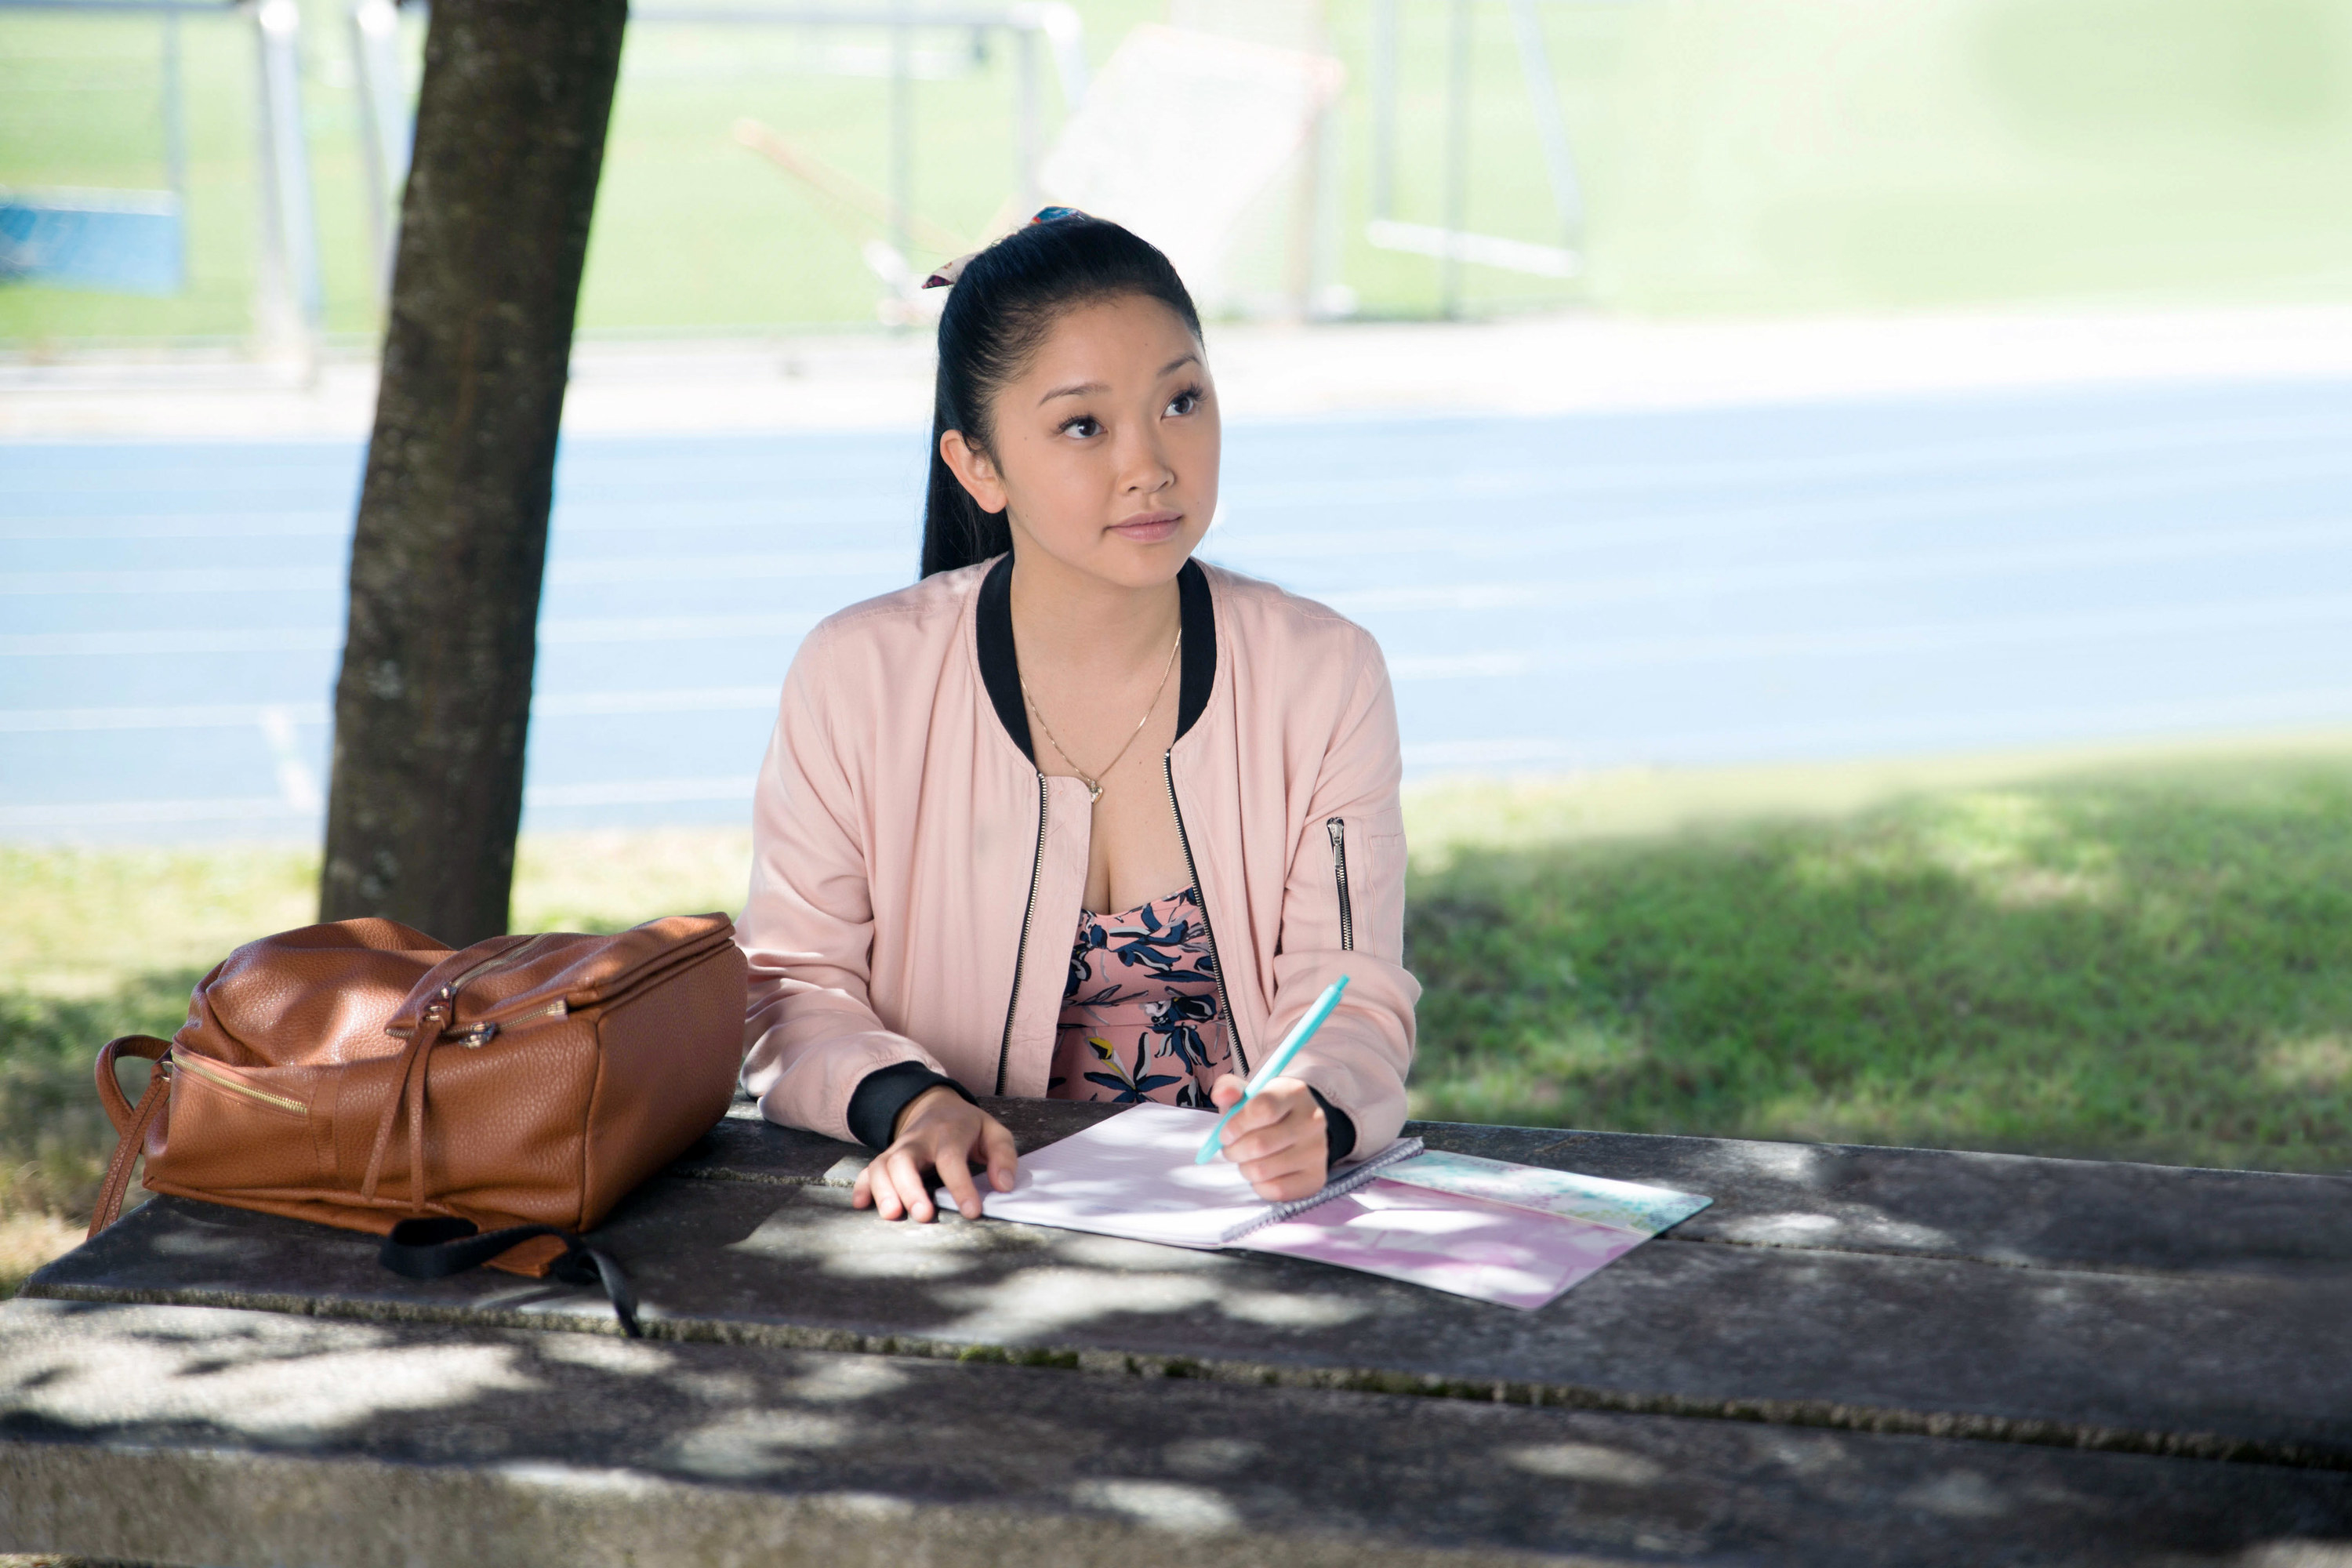 Lana Condor sits at a park bench with a bag by her side, holding a pen above a spiral notebook, in To All the Boys I've Loved Before